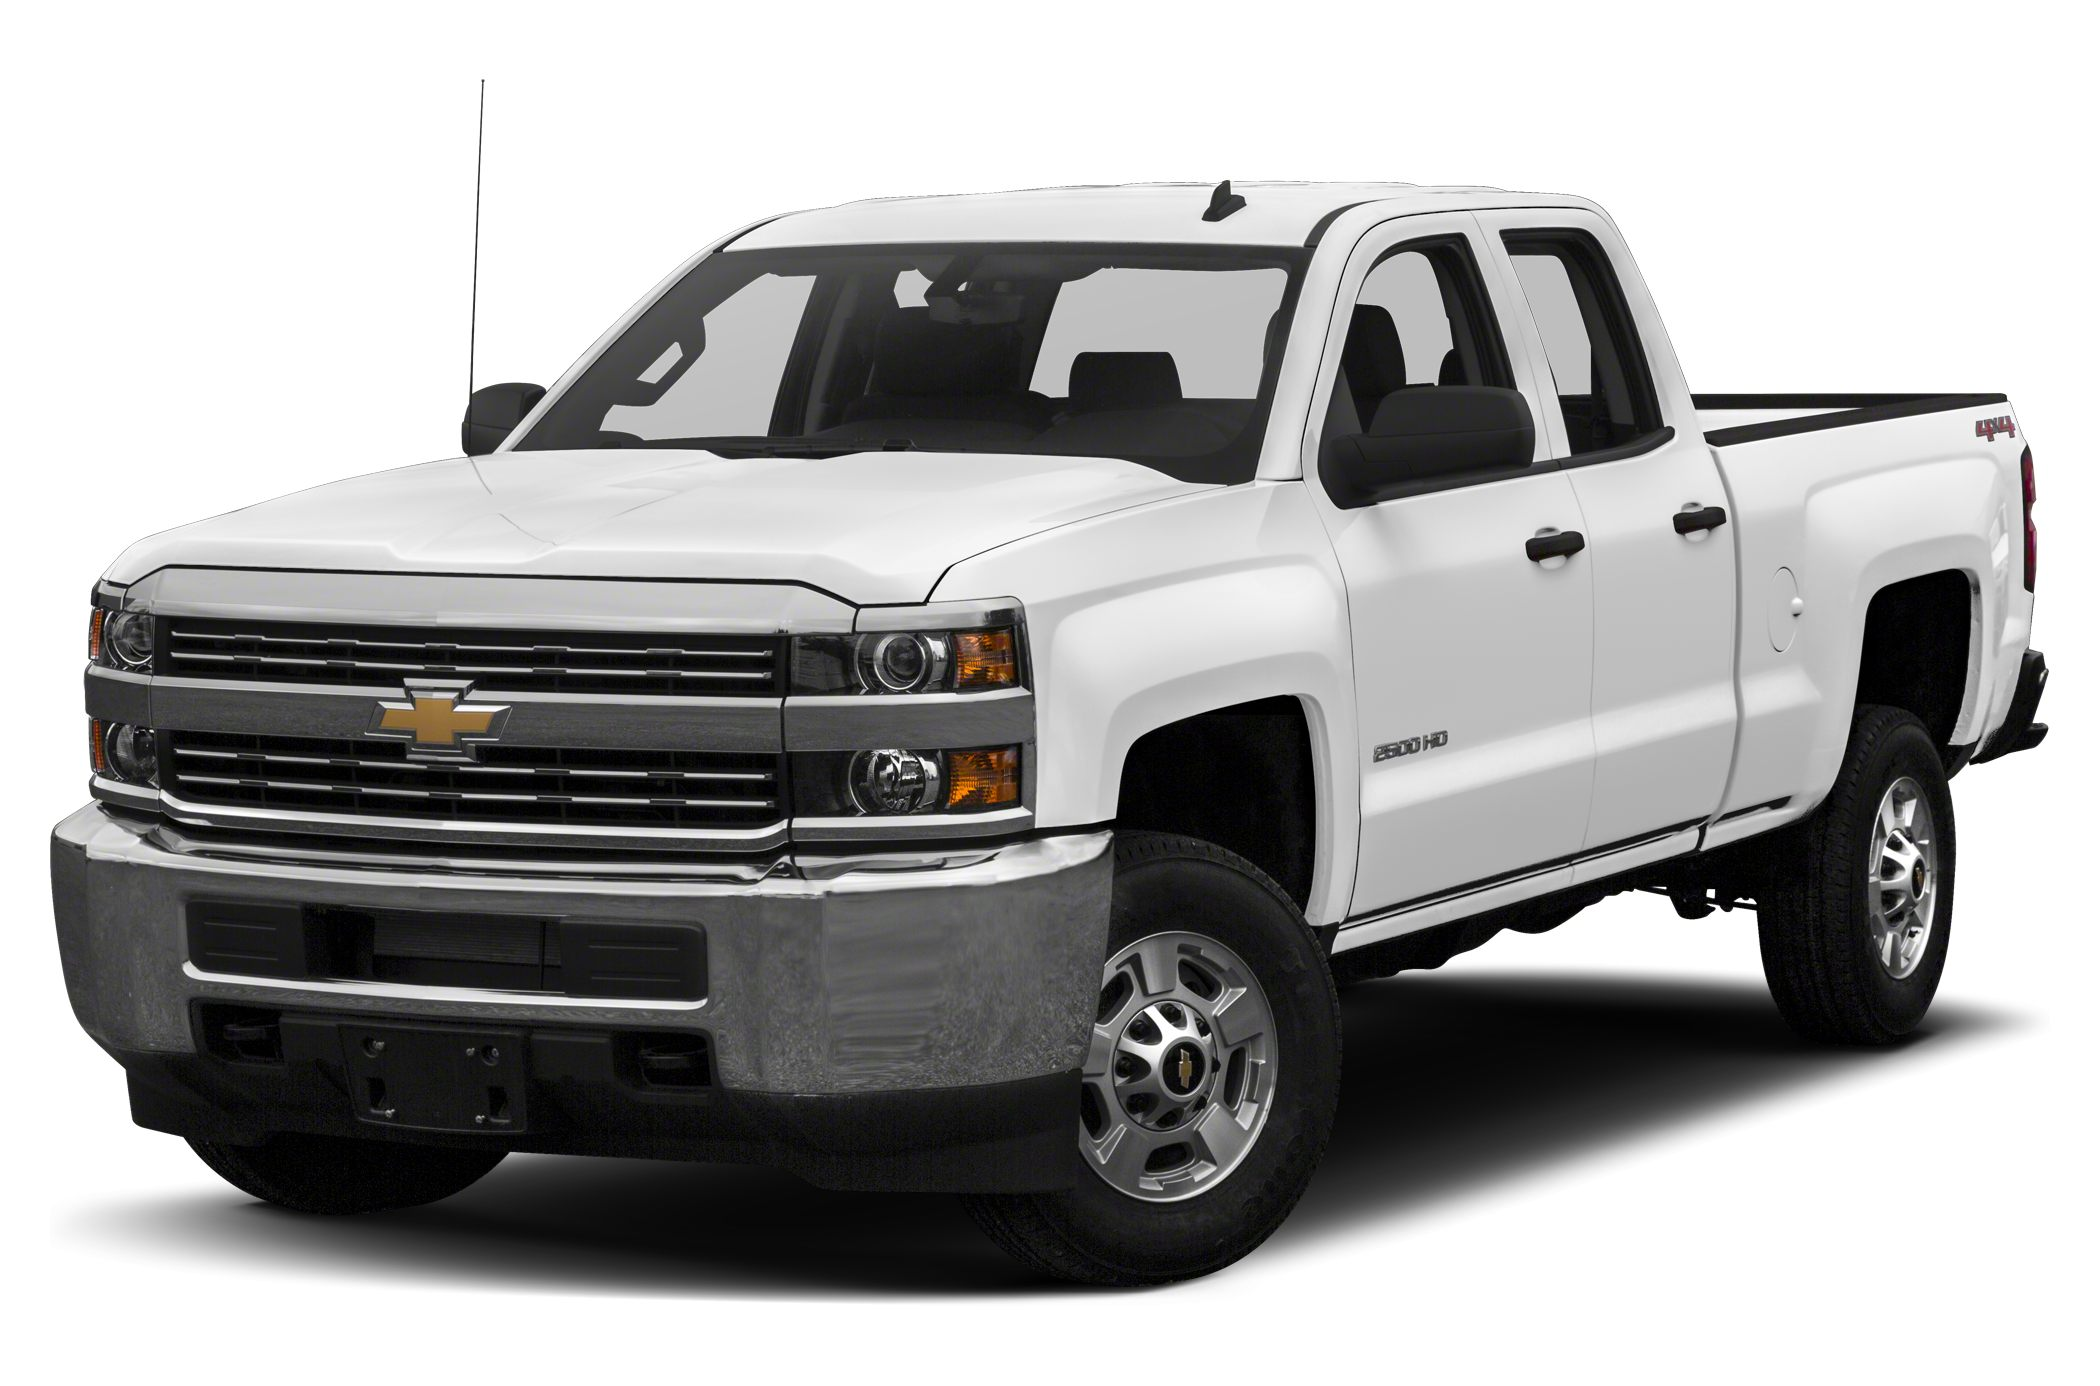 2015 Chevrolet Silverado 2500 LTZ Crew Cab Pickup for sale in Zebulon for $0 with 0 miles